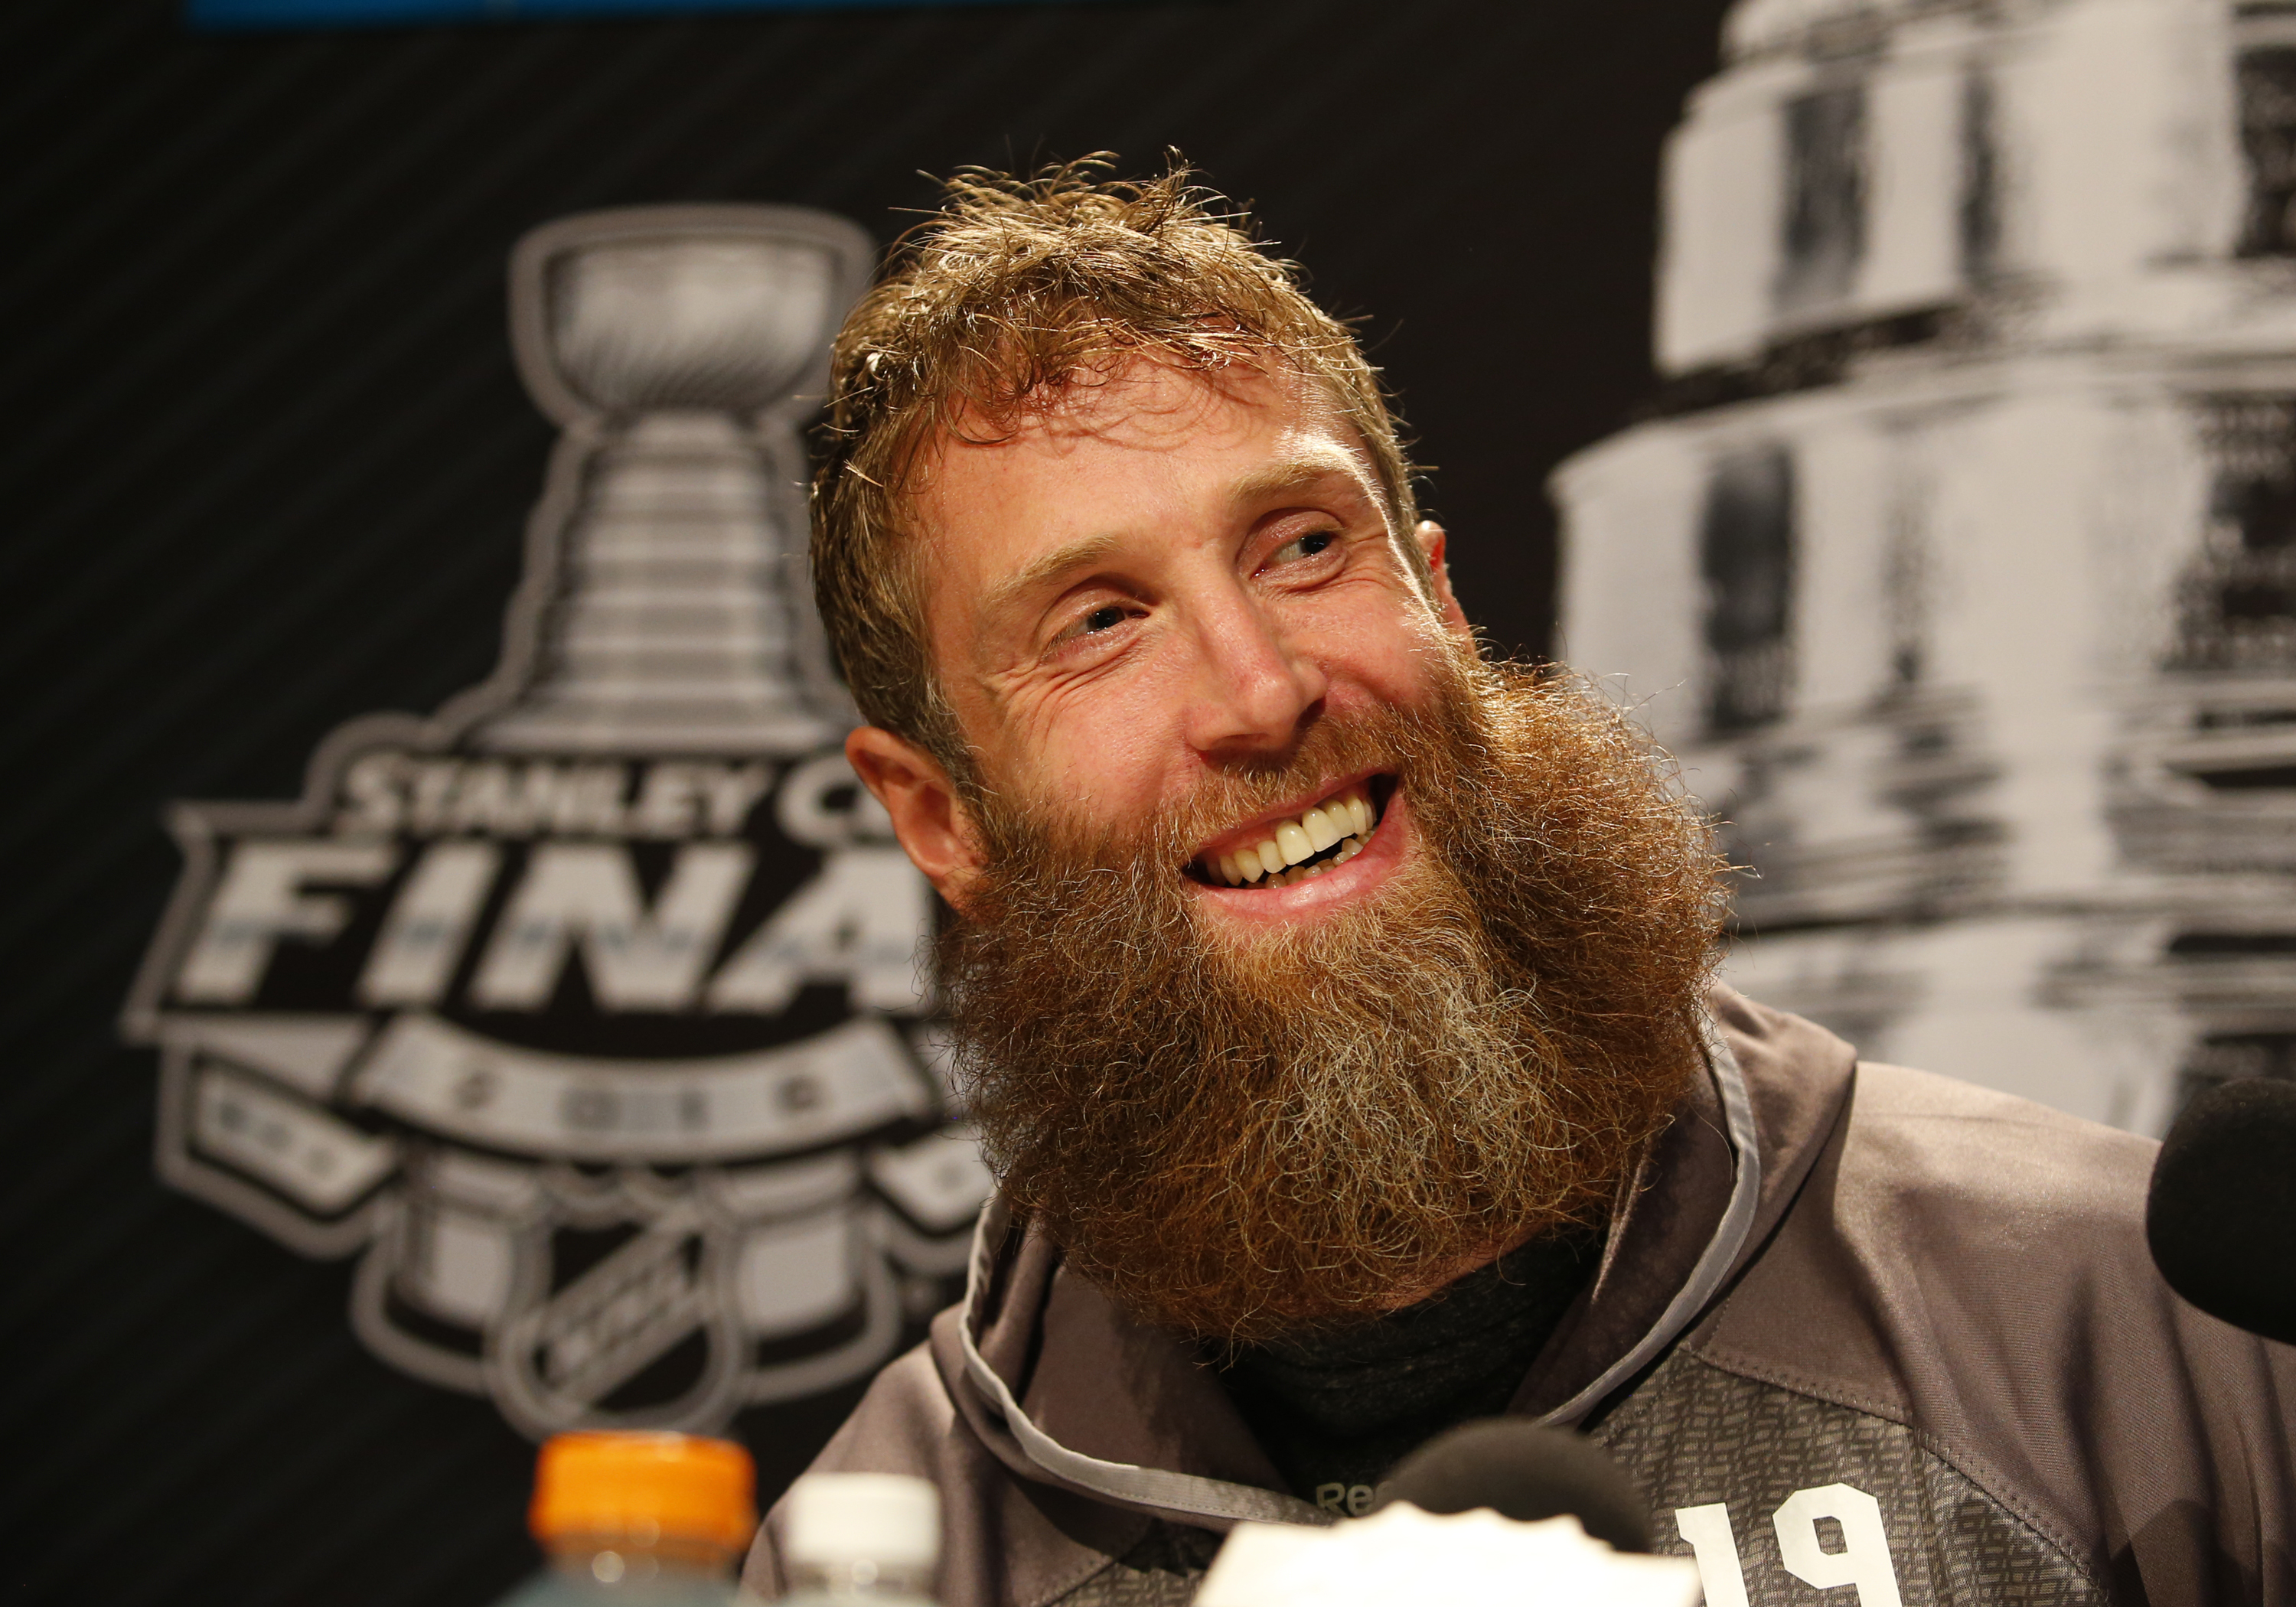 PITTSBURGH, PA - MAY 29: Joe Thornton #19 of the San Jose Sharks addresses the media during the NHL Stanley Cup Final Media Day at Consol Energy Center on May 29, 2016 in Pittsburgh, Pennsylvania. (Photo by Justin K. Aller/Getty Images)